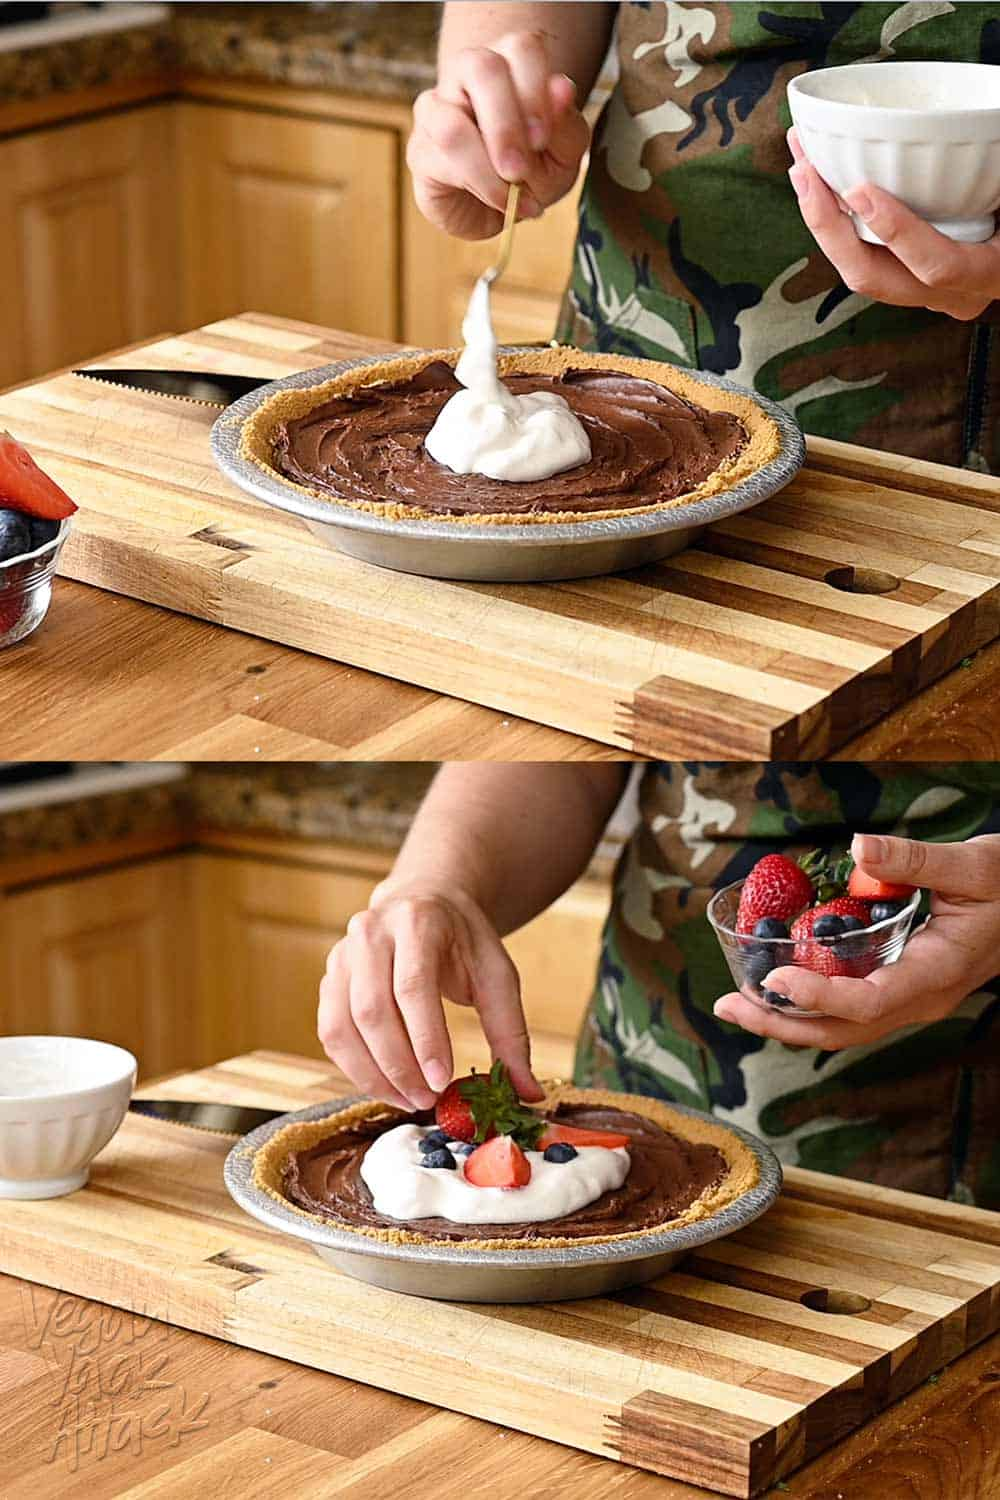 Topping chocolate pie with whipped cream and berries